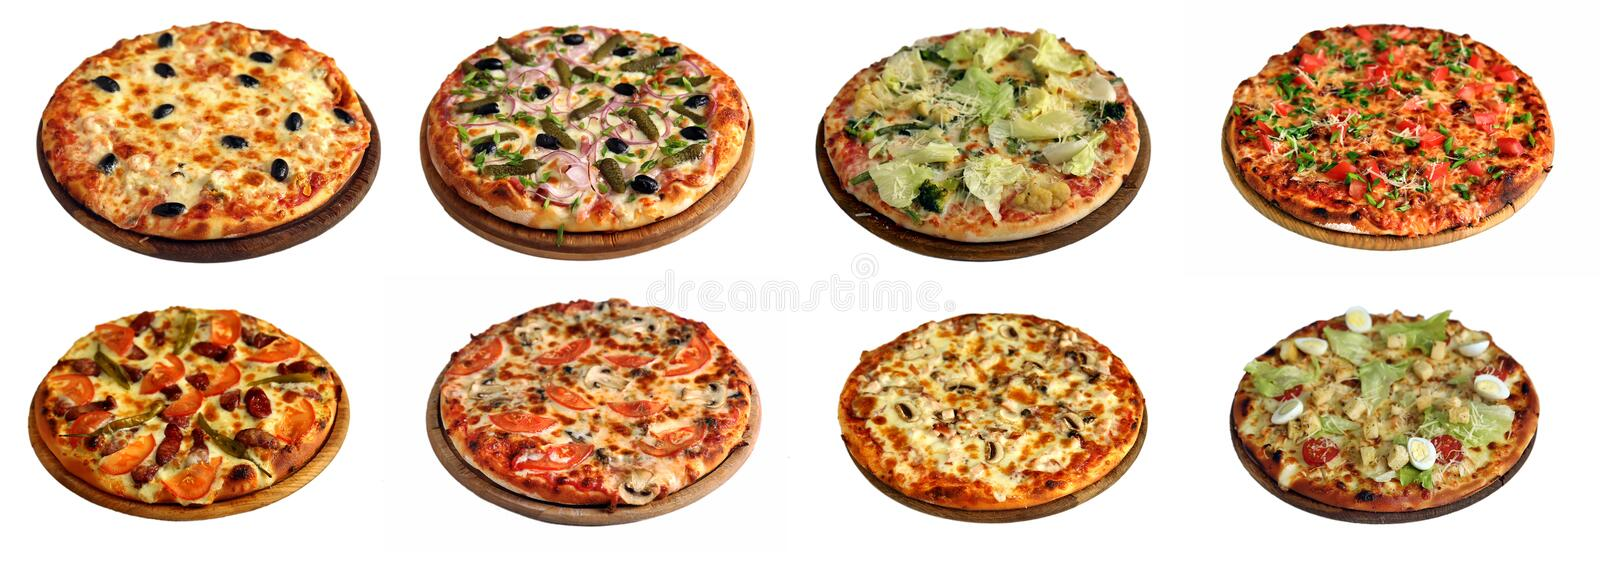 Set of different pizzas isolated on white royalty free stock images